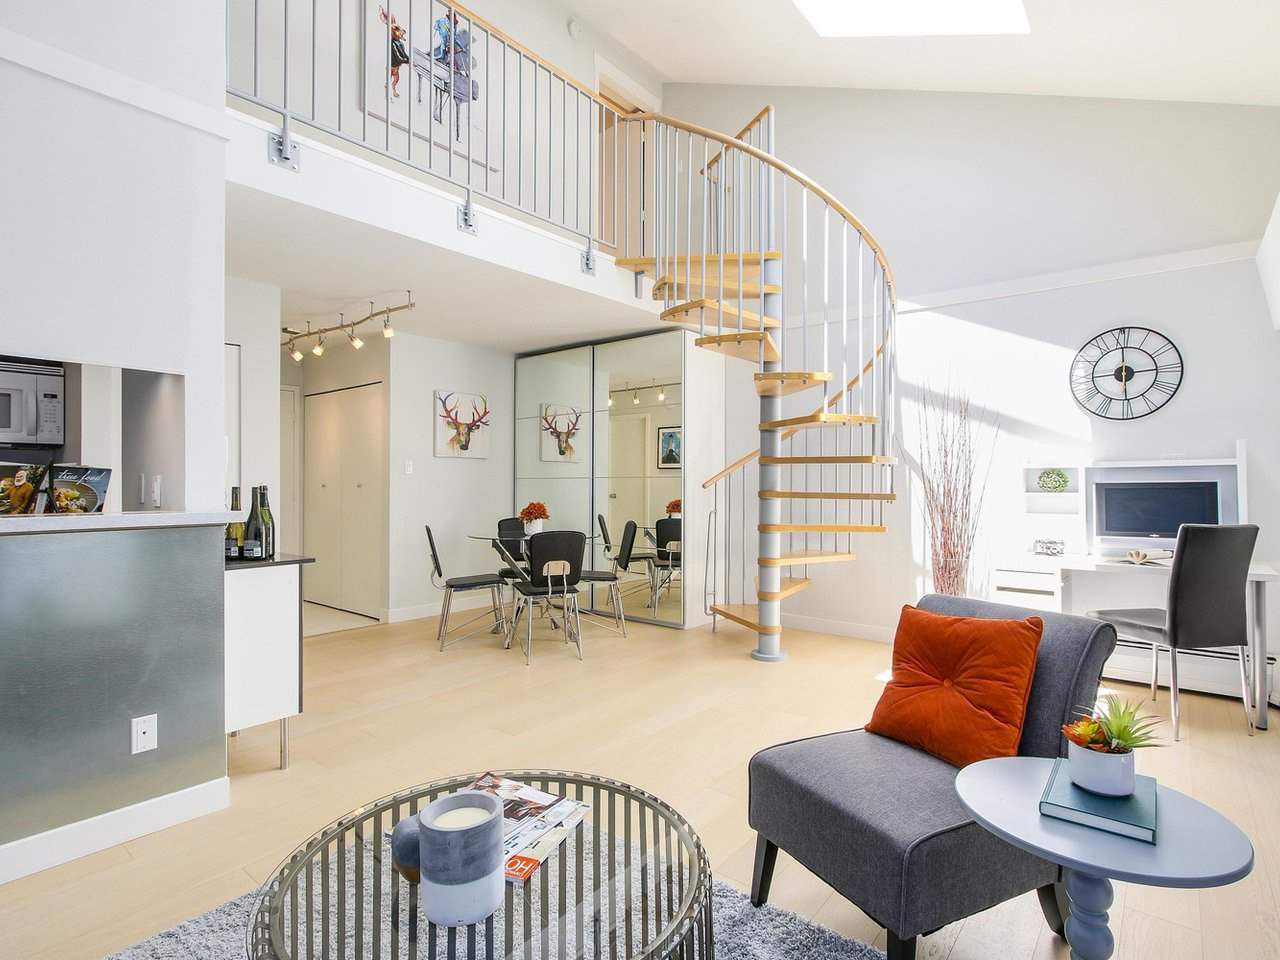 """Main Photo: 306 1425 CYPRESS Street in Vancouver: Kitsilano Condo for sale in """"Cypress West"""" (Vancouver West)  : MLS®# R2183416"""